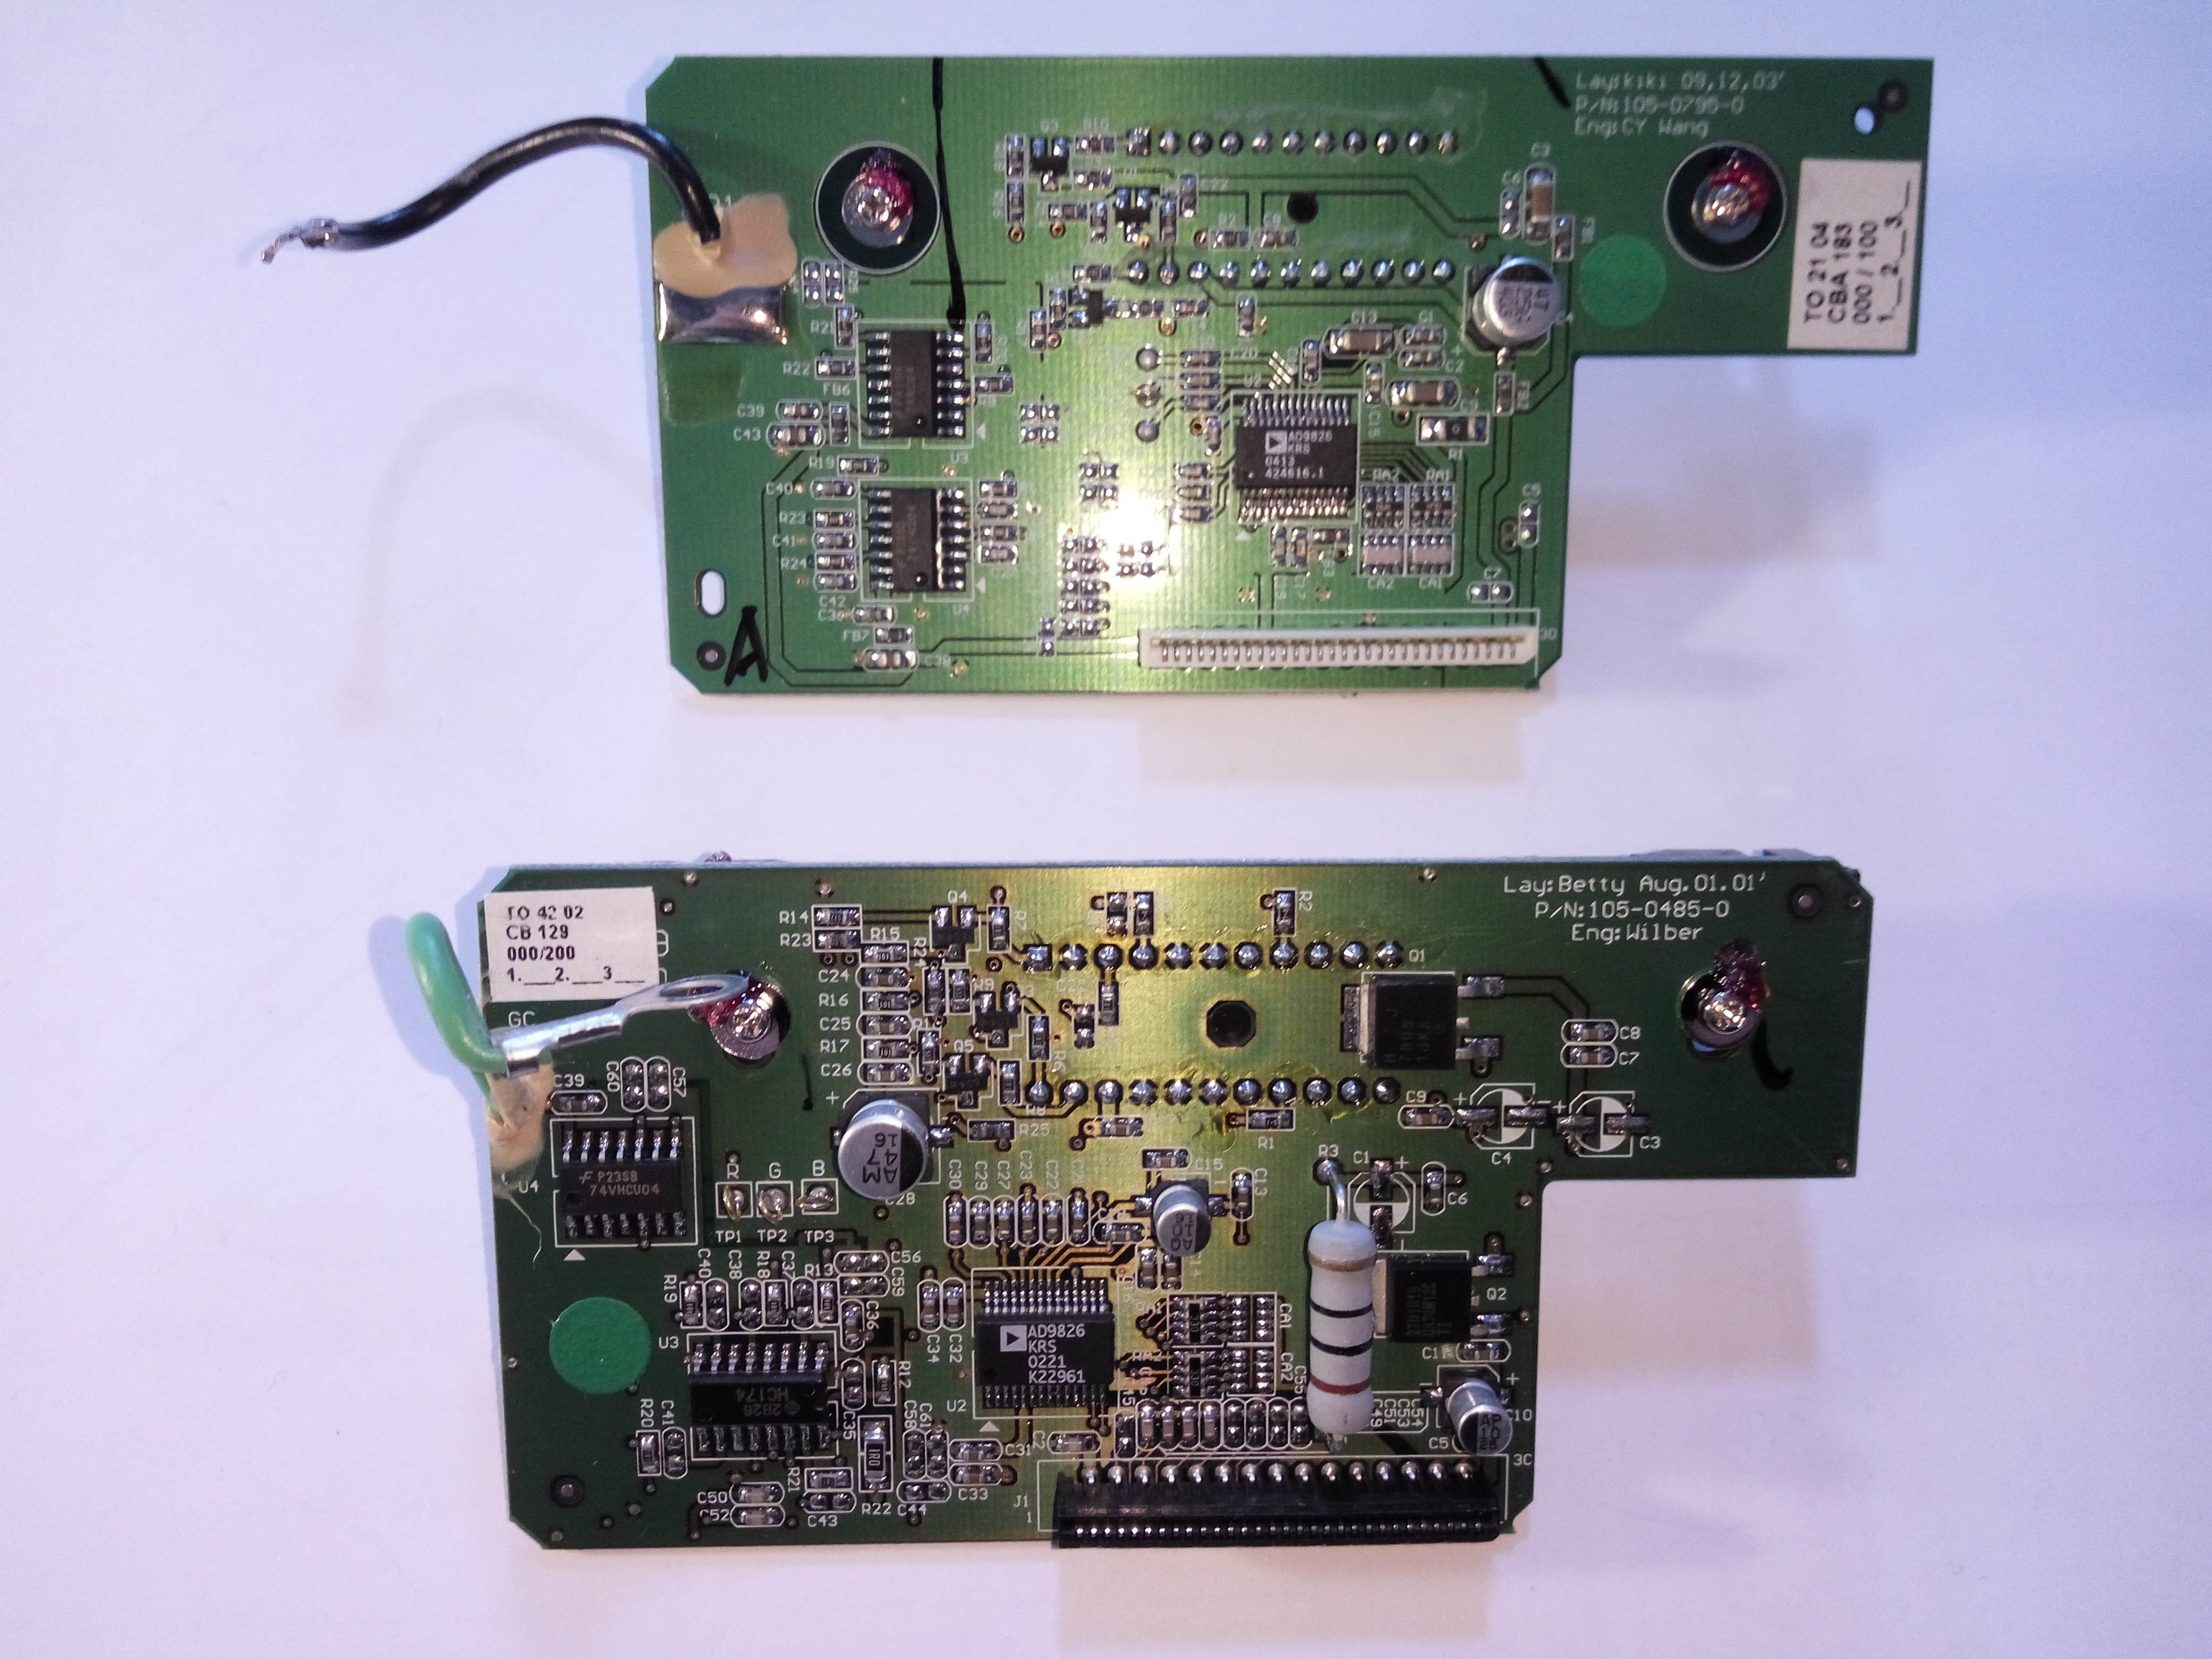 3 Charge-coupled devic...